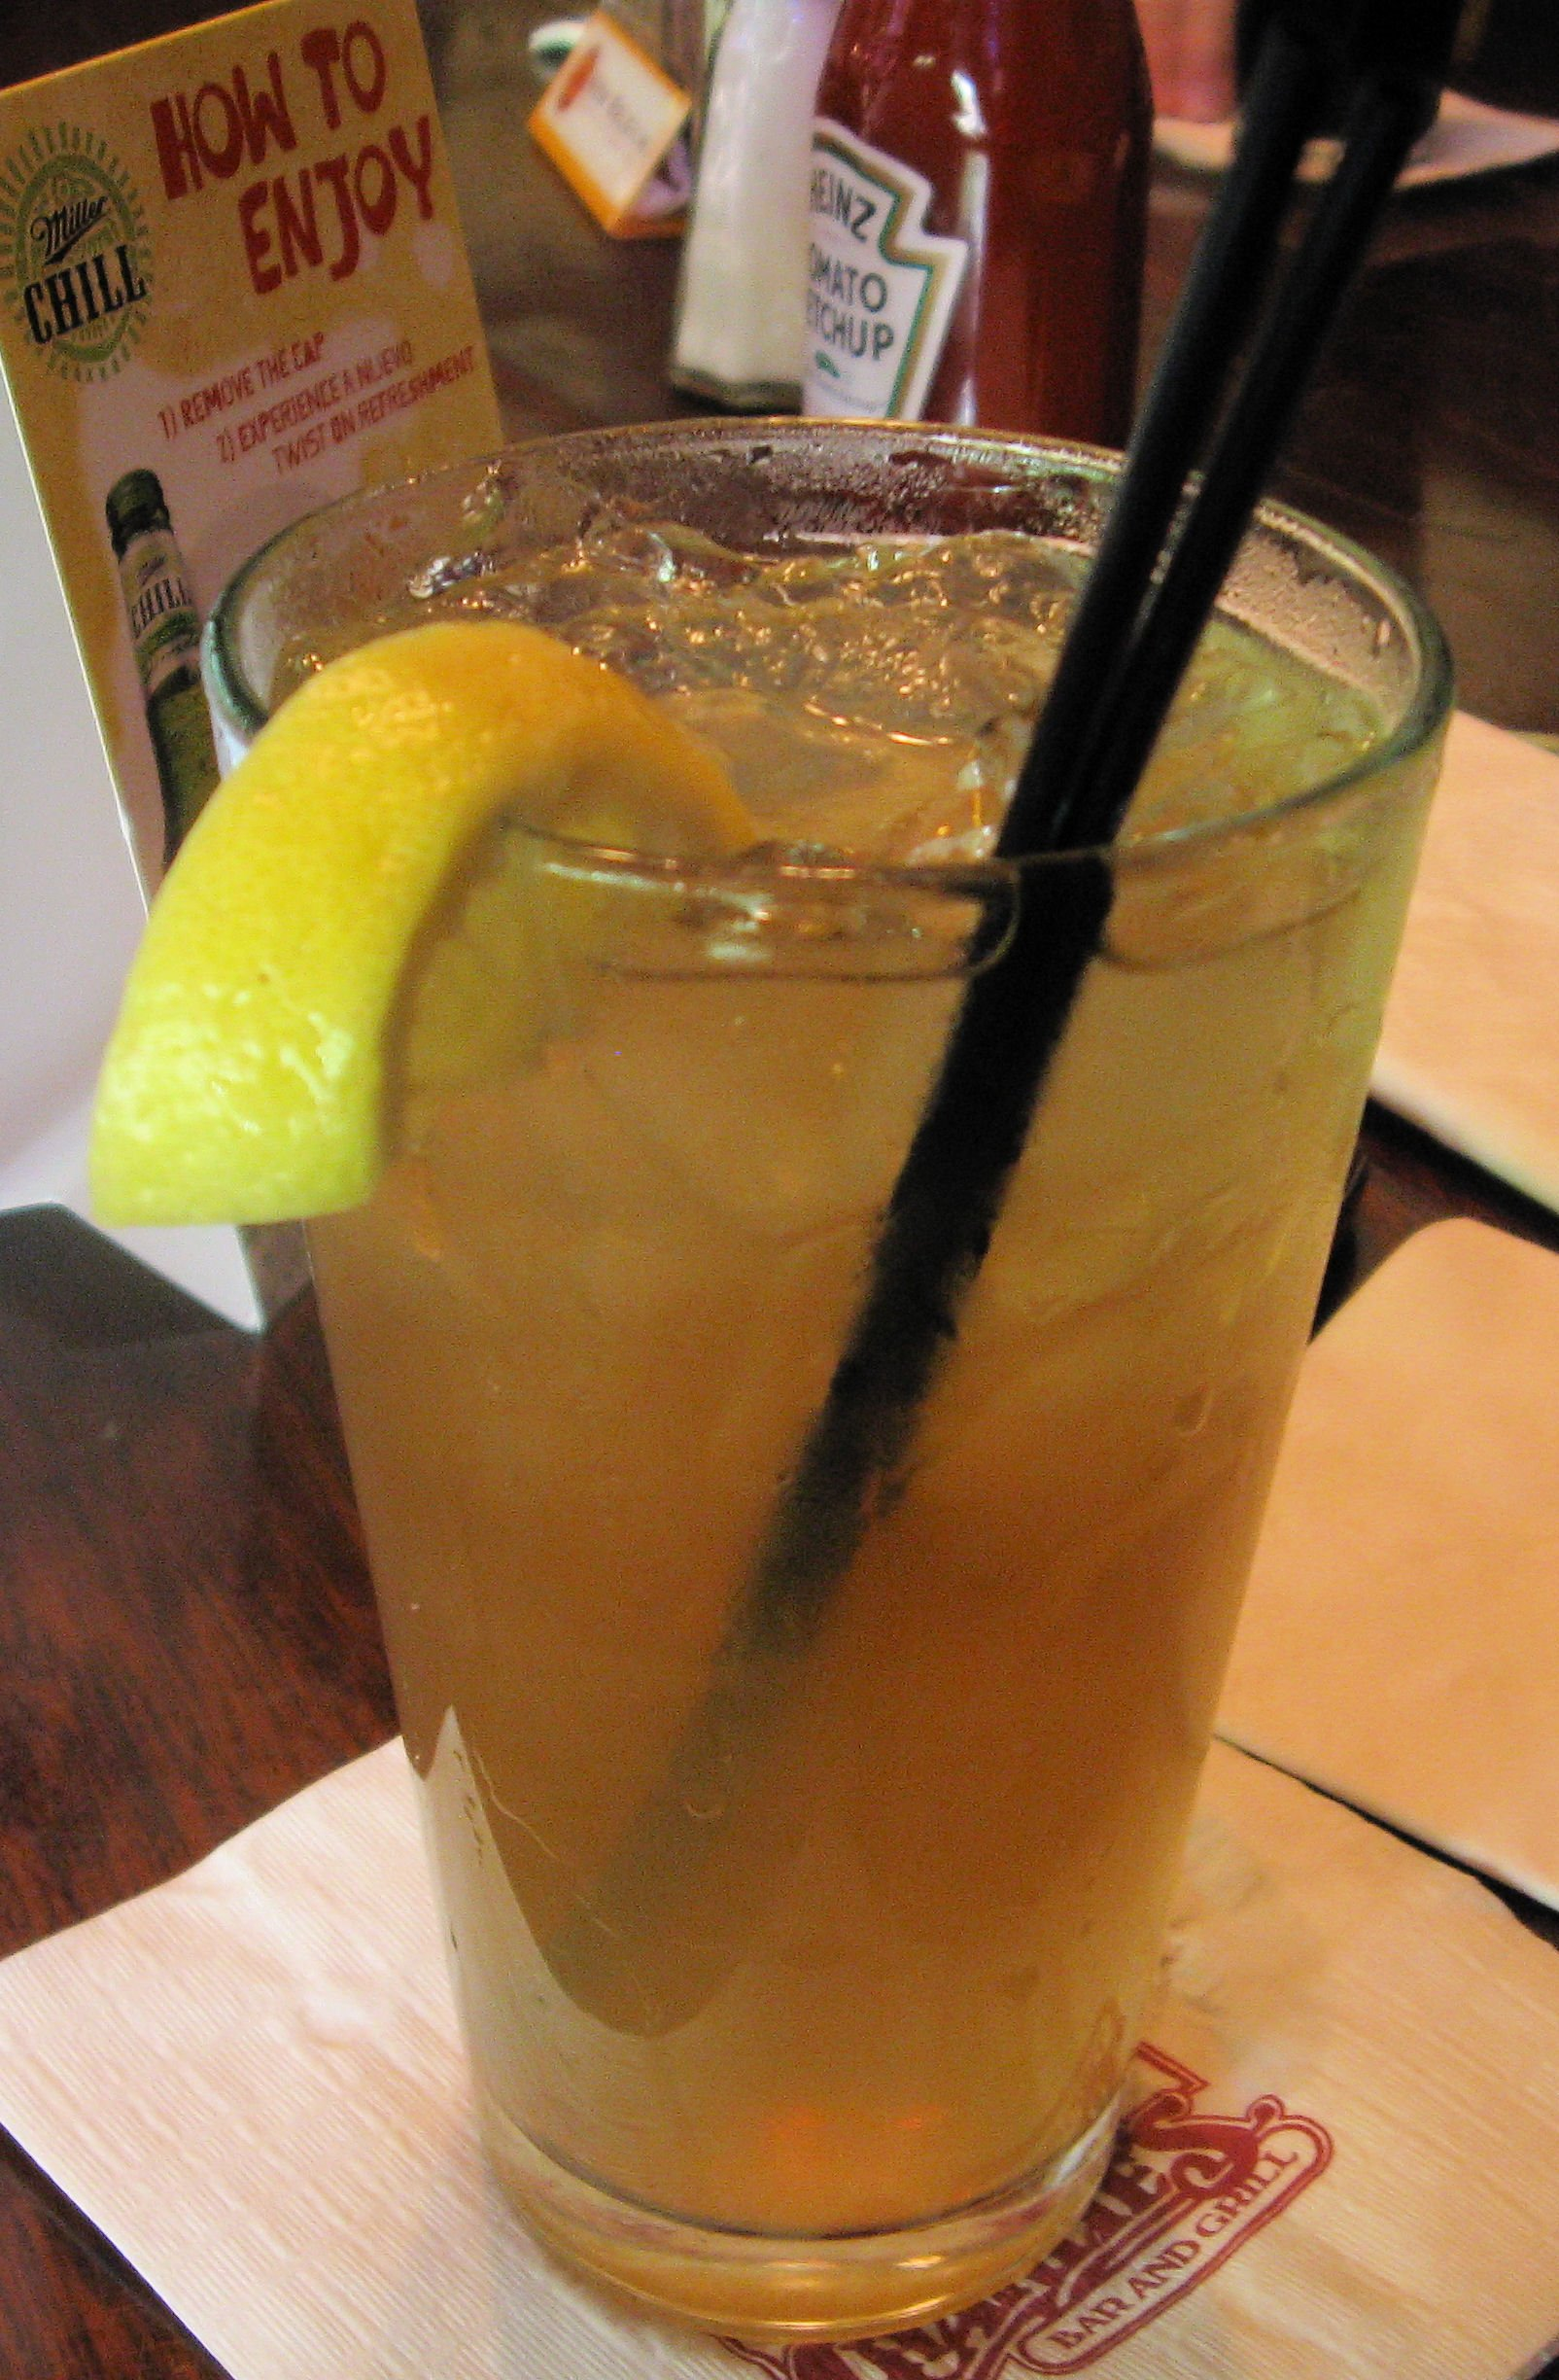 File:Long Island Iced Tea 2008.jpg - Wikipedia, the free encyclopedia